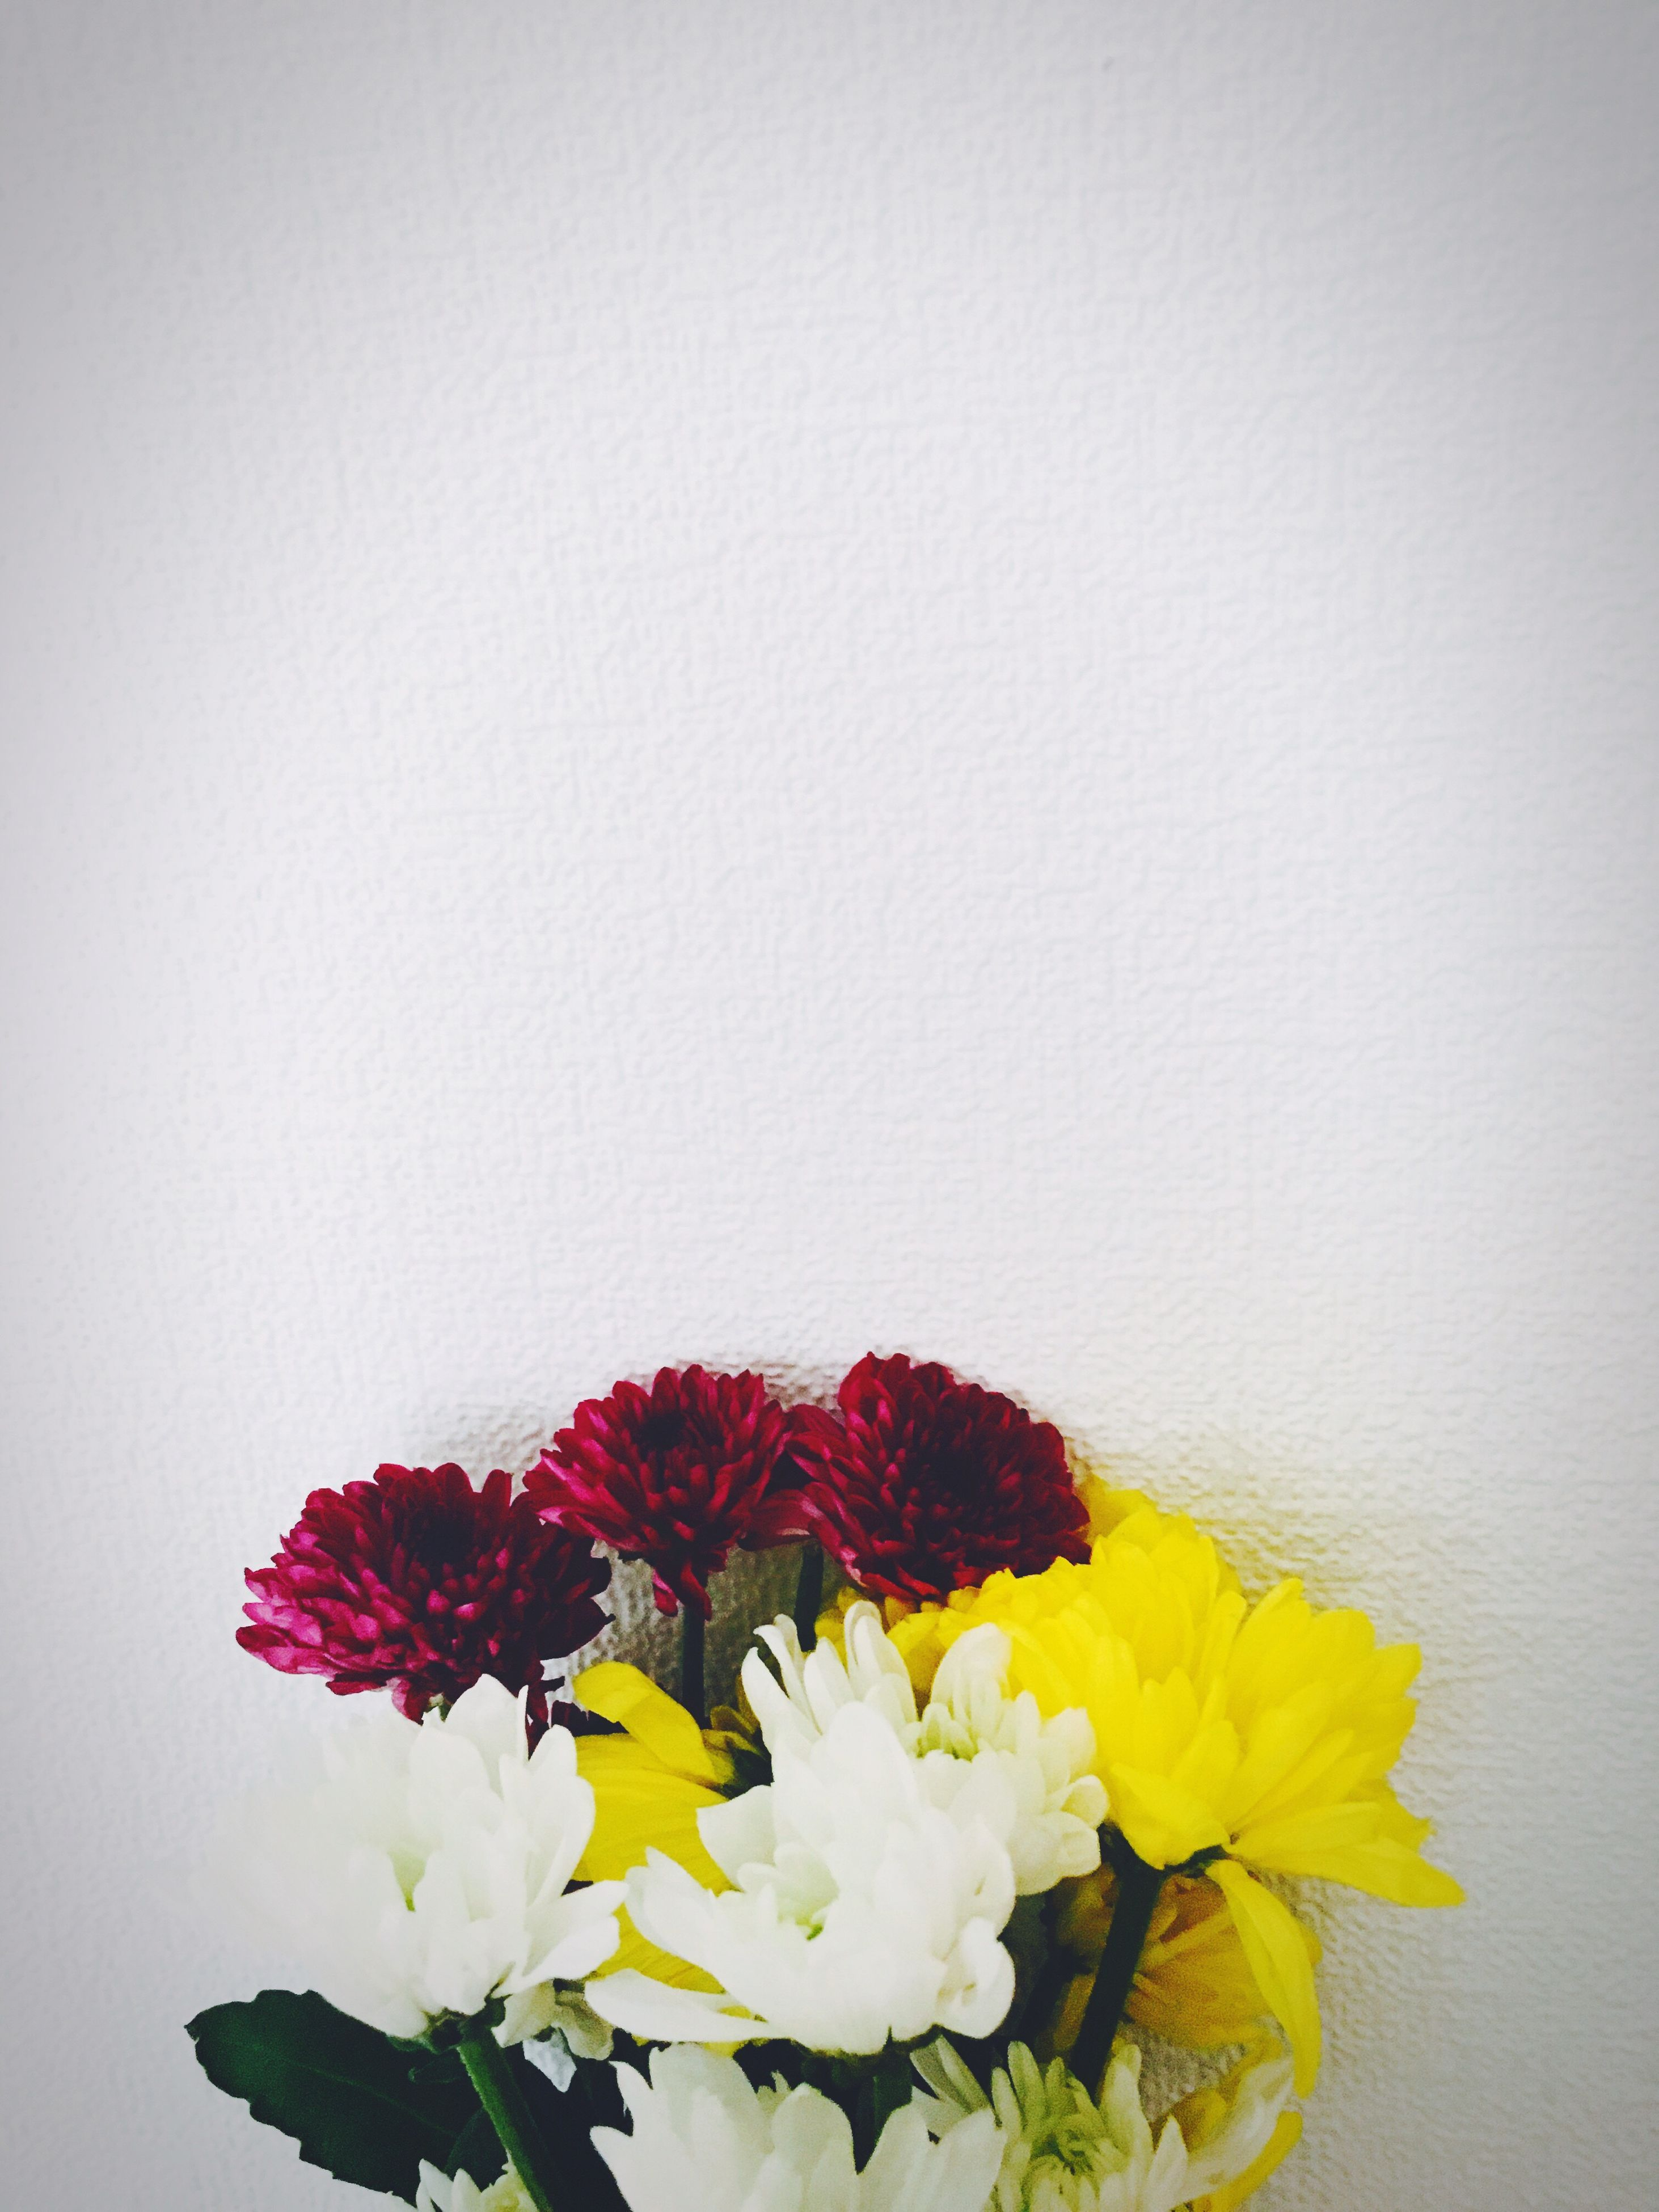 flower, petal, freshness, fragility, flower head, studio shot, copy space, beauty in nature, white background, yellow, wall - building feature, nature, indoors, plant, growth, close-up, stem, blooming, vase, white color